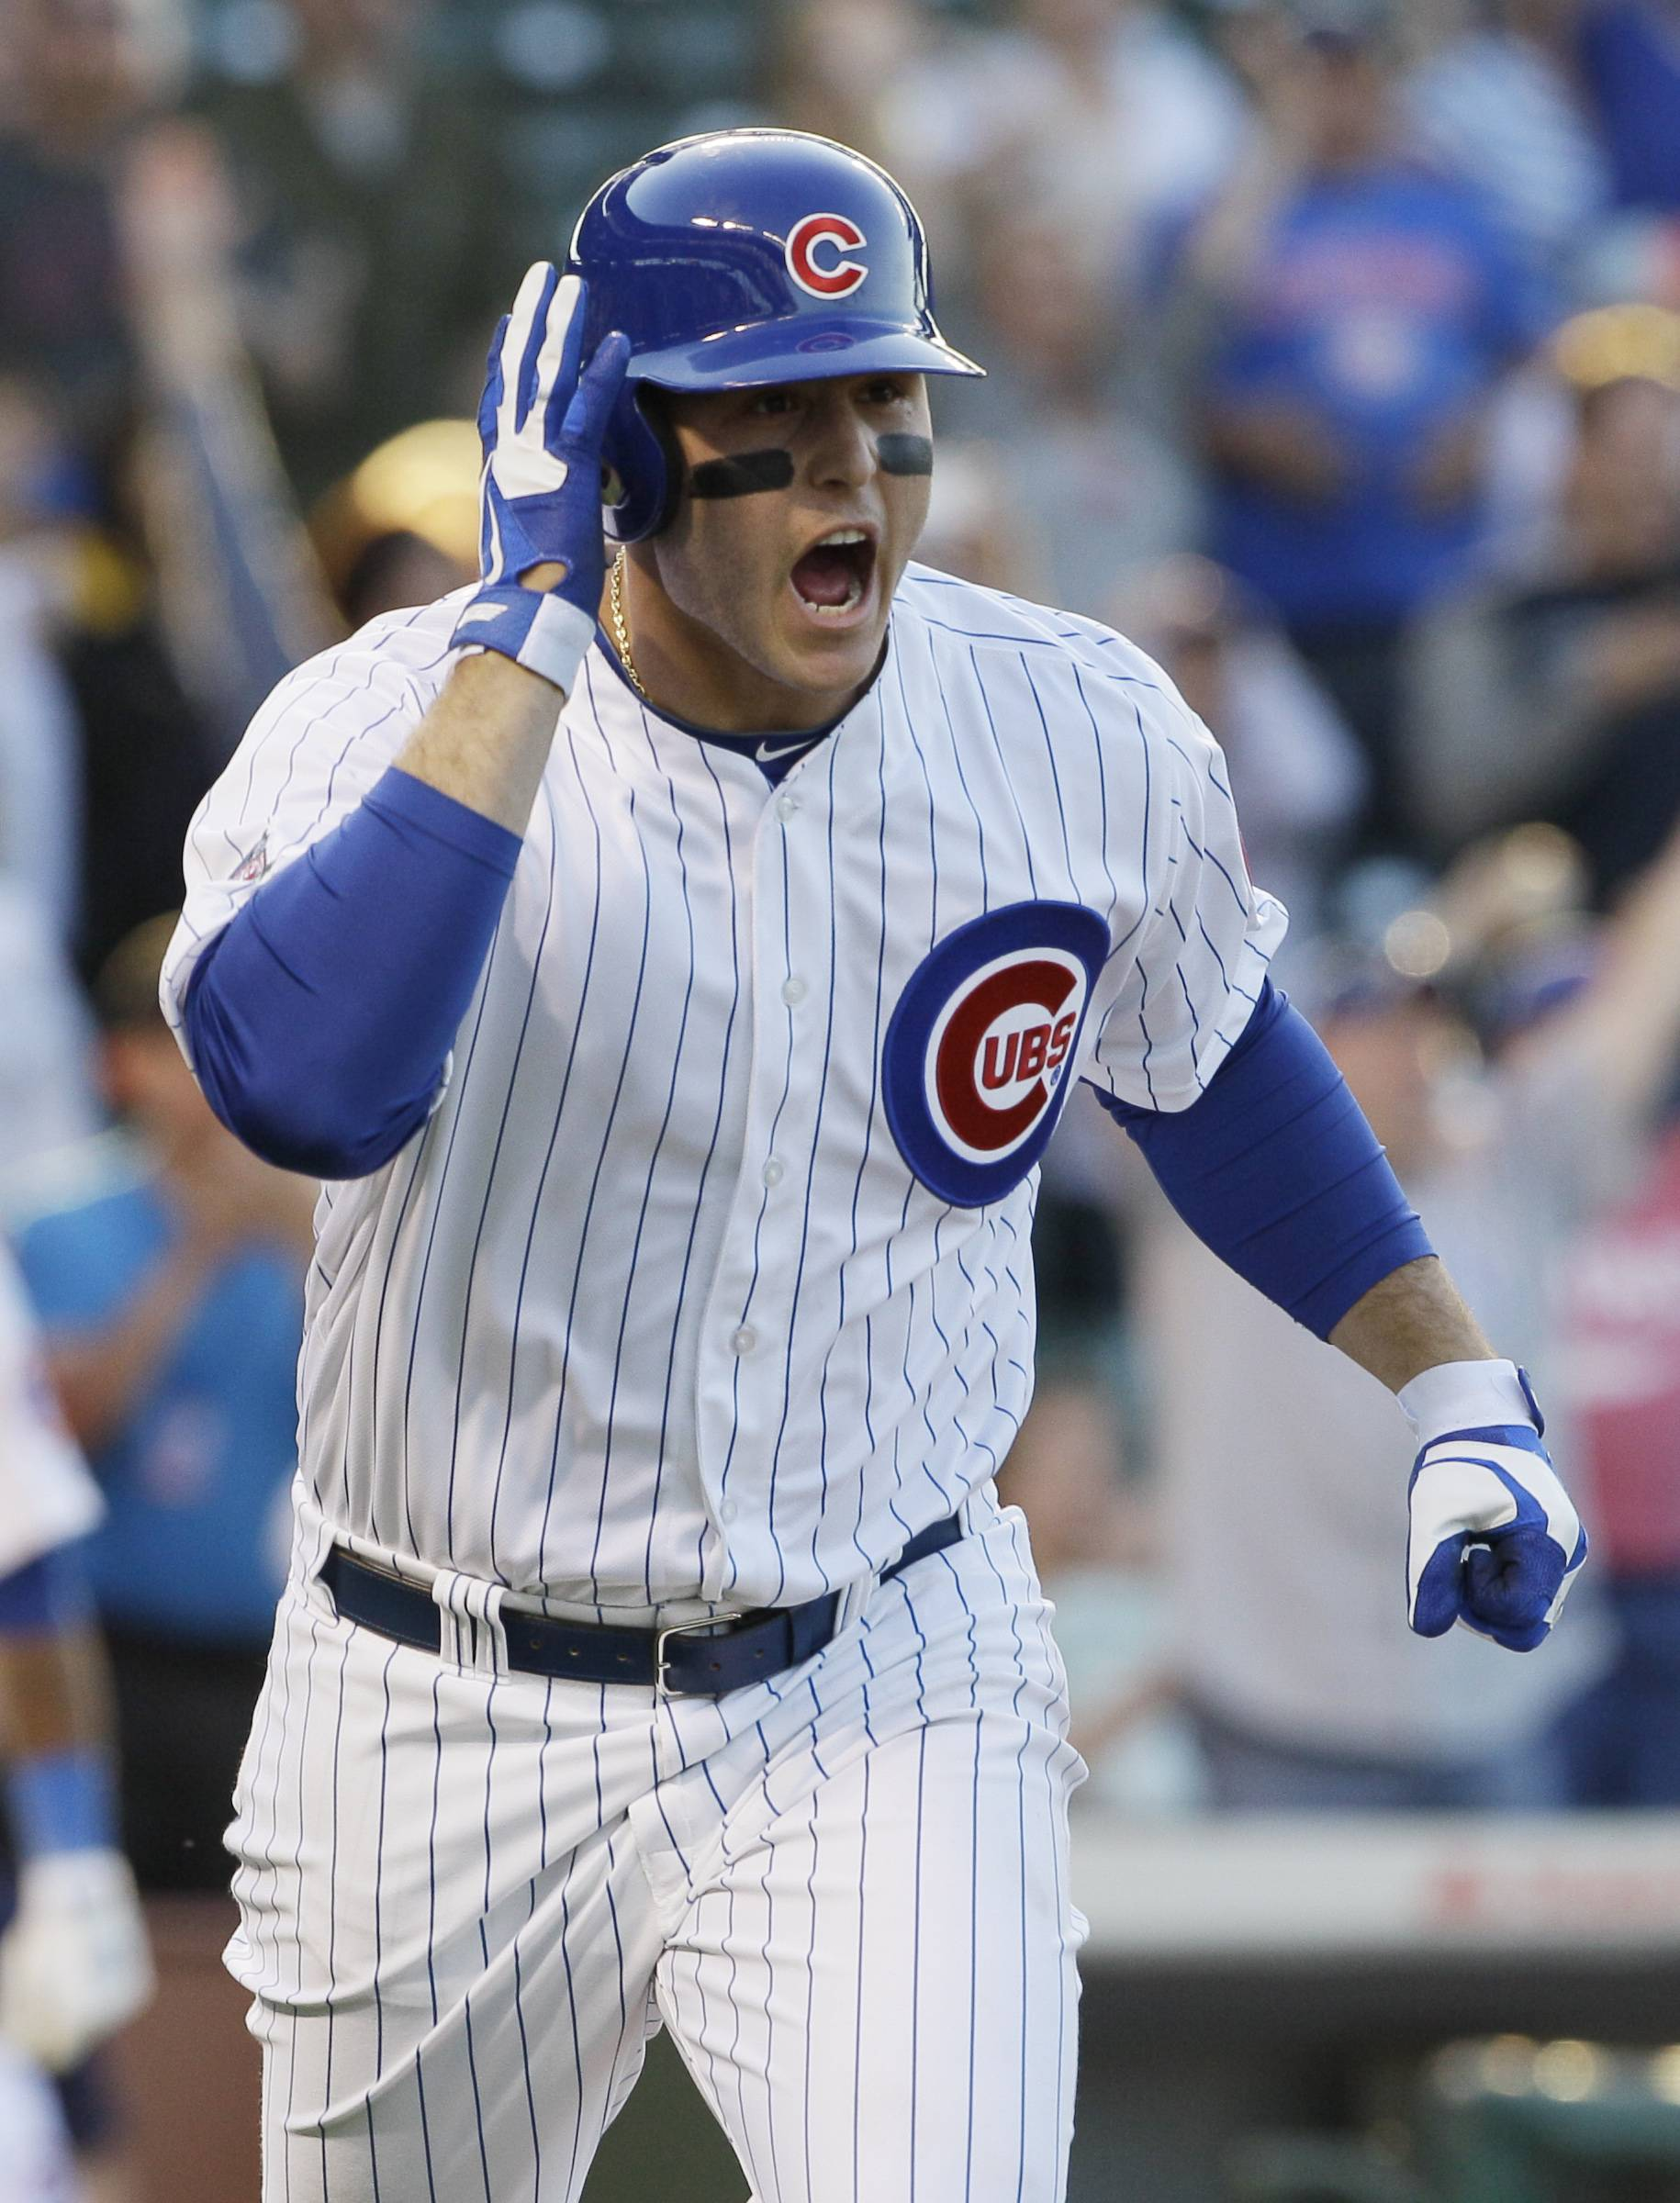 Anthony Rizzo reacts rounding the bases after hitting a walk-off 2-run homer in the 13th inning as the Cubs beat the Marlins 5-3 at Wrigley Field.